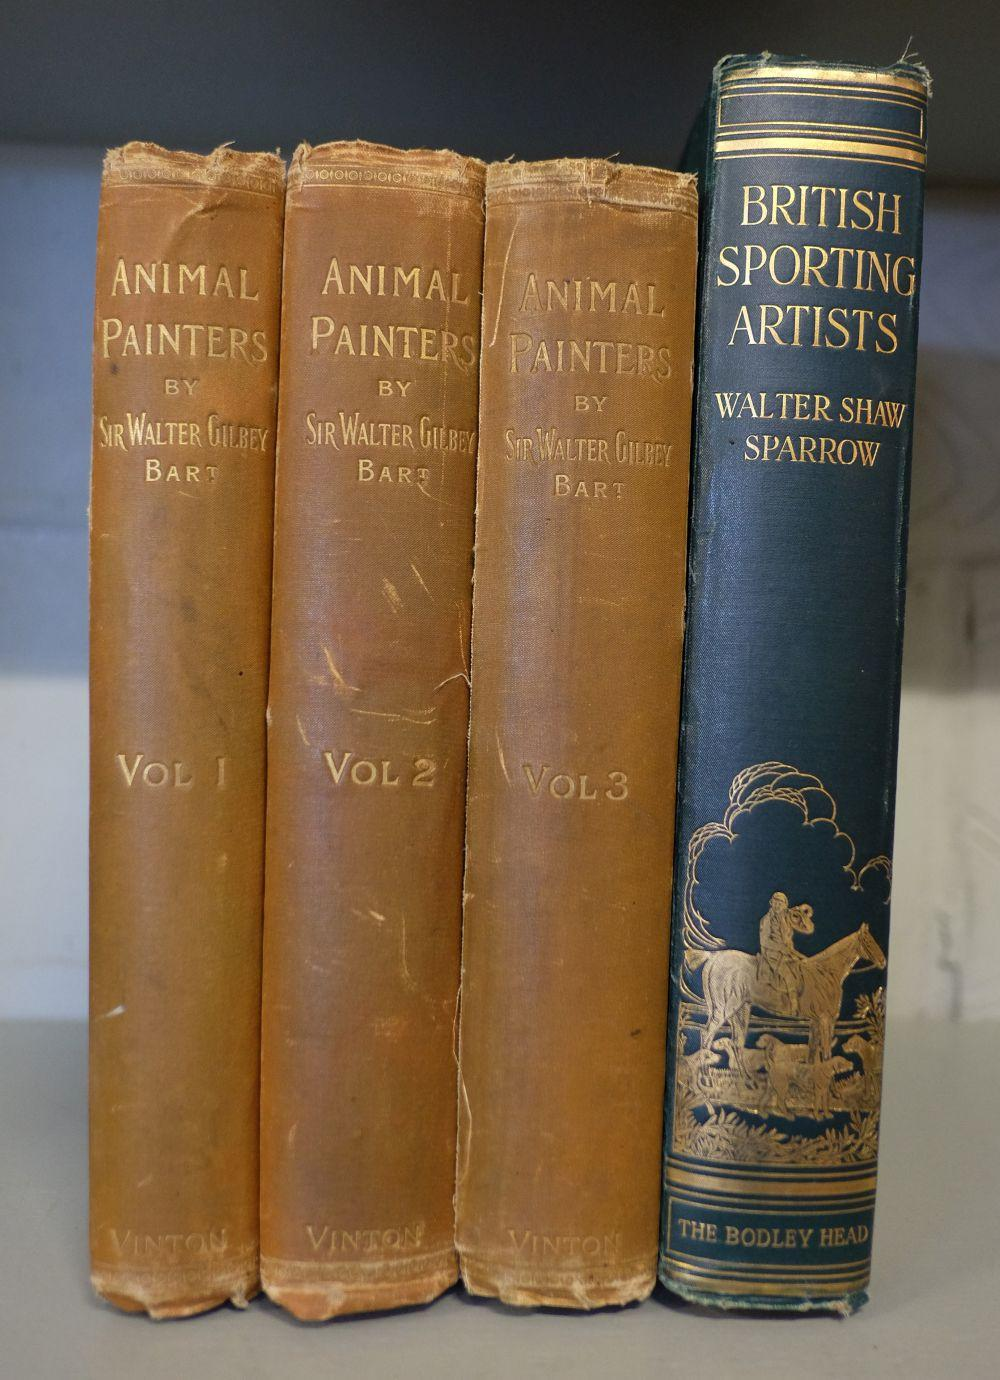 Gilbey (Sir Walter). Animal Painters of England from the Year 1650, 3 volumes, 1900-1911